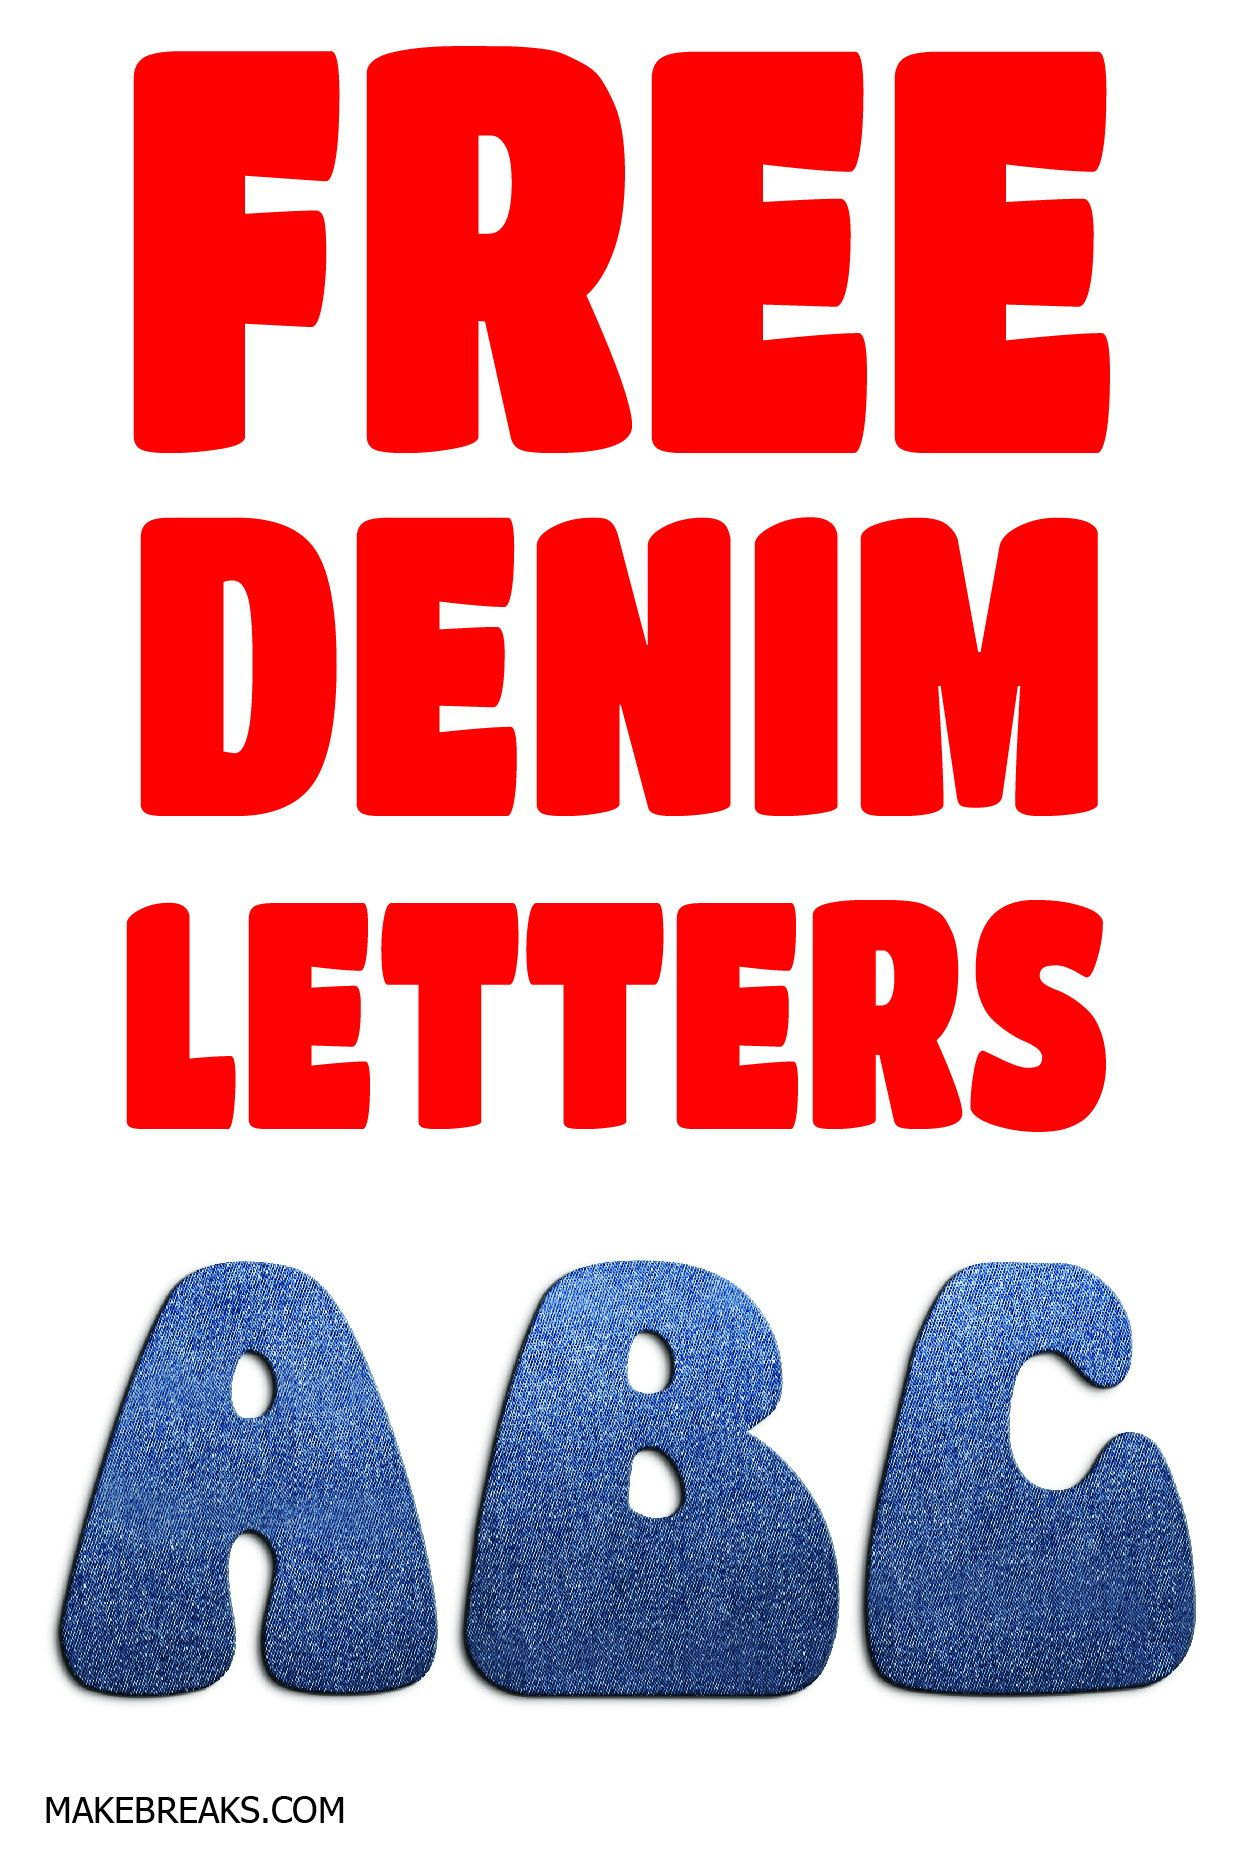 Free printable denim effect letters for bunting and crafts